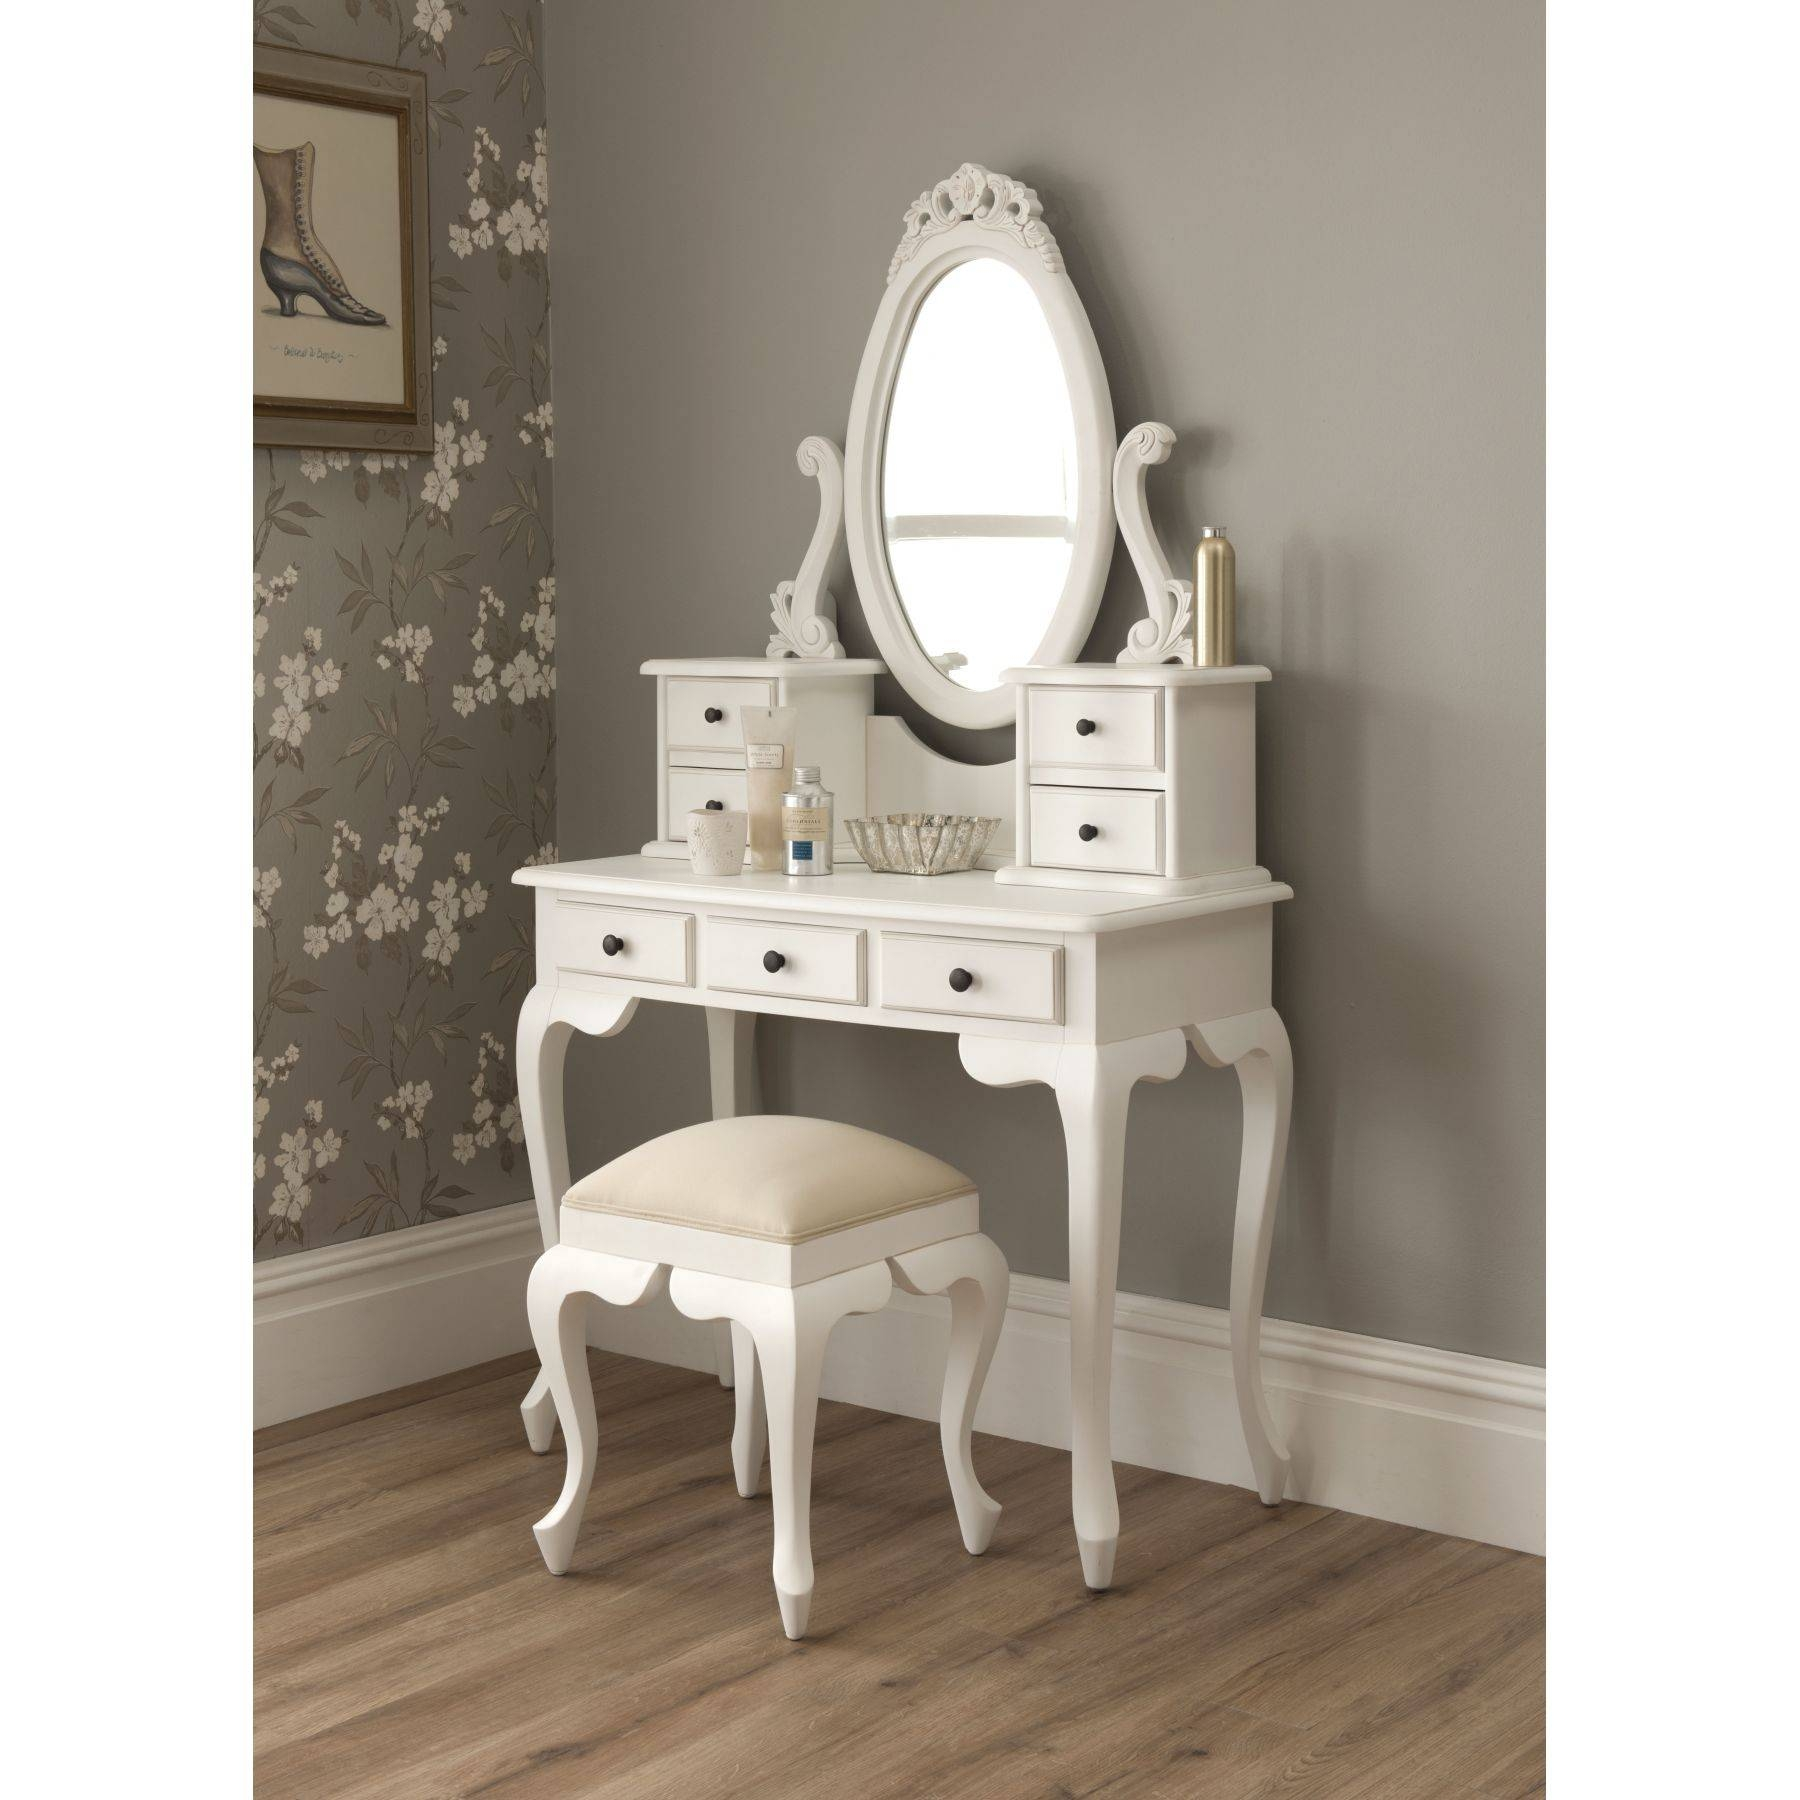 Bedroom : Small Dressing Table With Mirror Makeup Table With With Regard To Mirrors On Stand For Dressing Table (View 7 of 15)